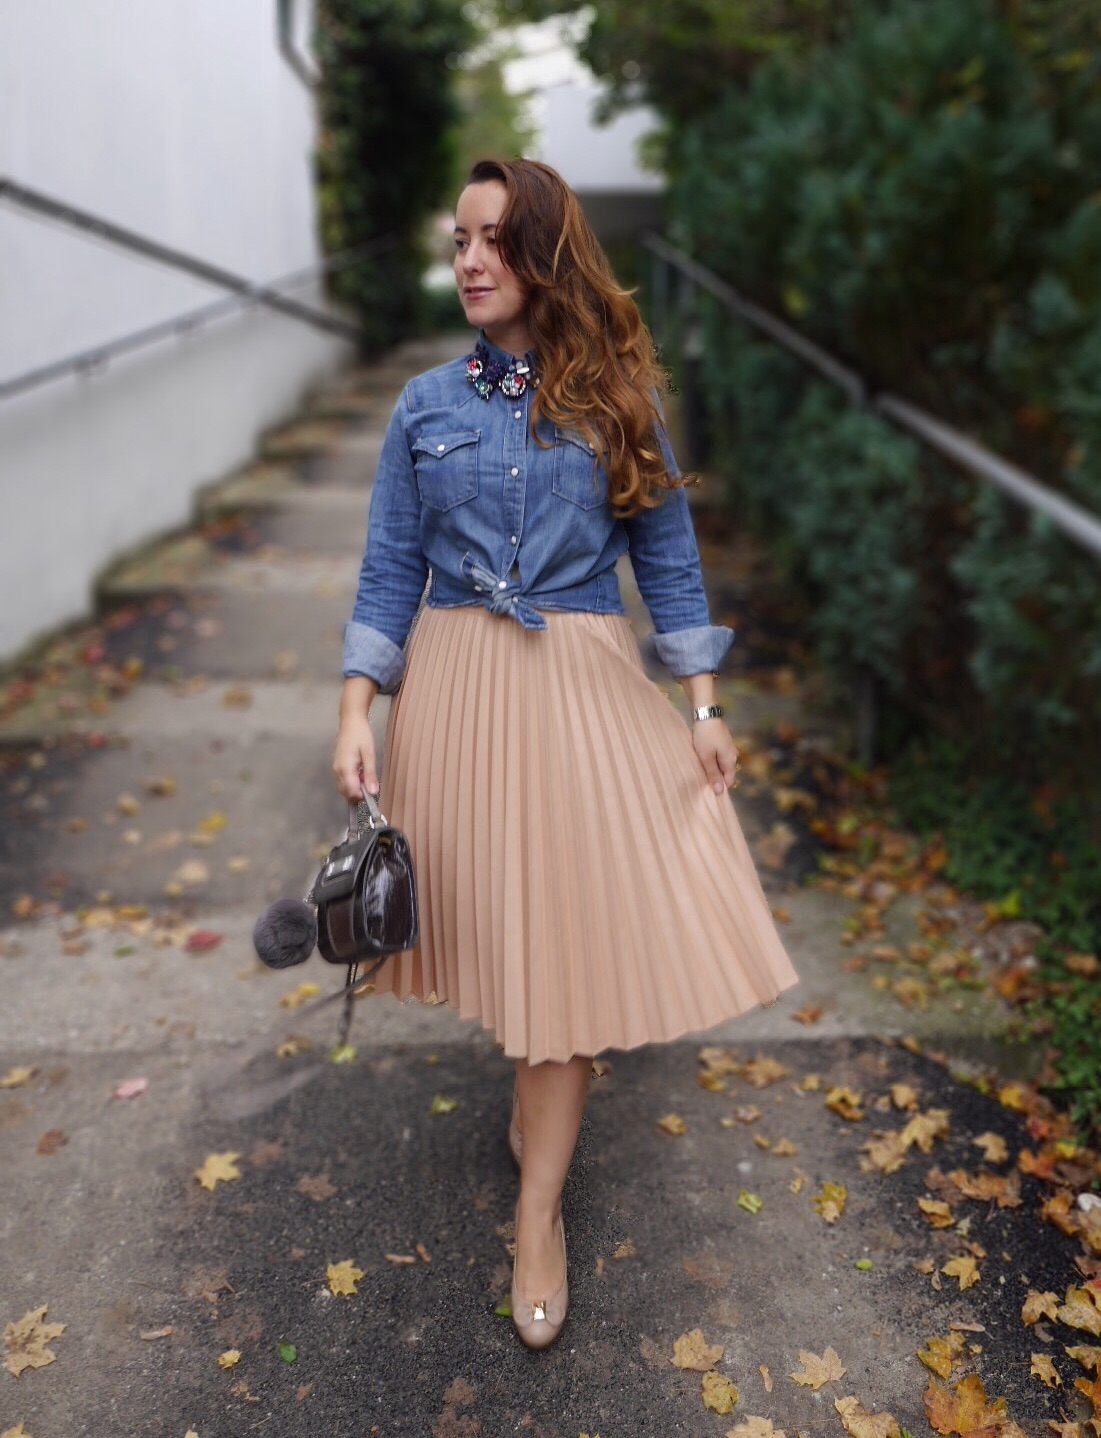 De mayor quiero ser egoblogger, fashion, egoblogger, street style, pleated skirt Zara, falda plisada Zara, blogger de moda, fashion blogger